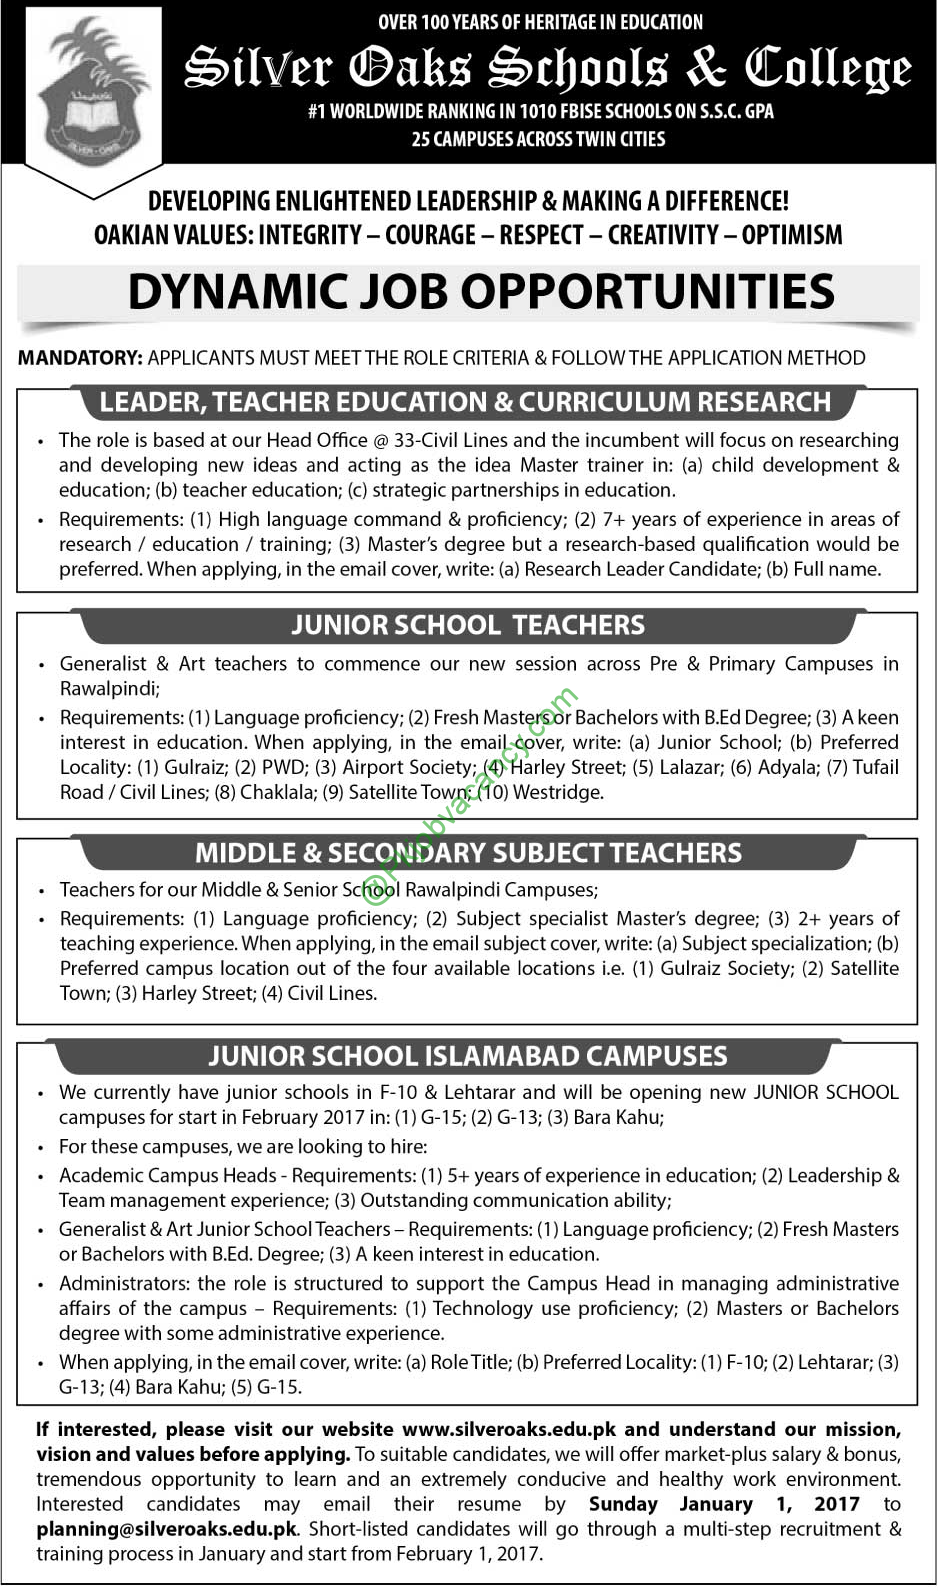 Admin And Teachers Jobs In Silver Oaks Schools & College